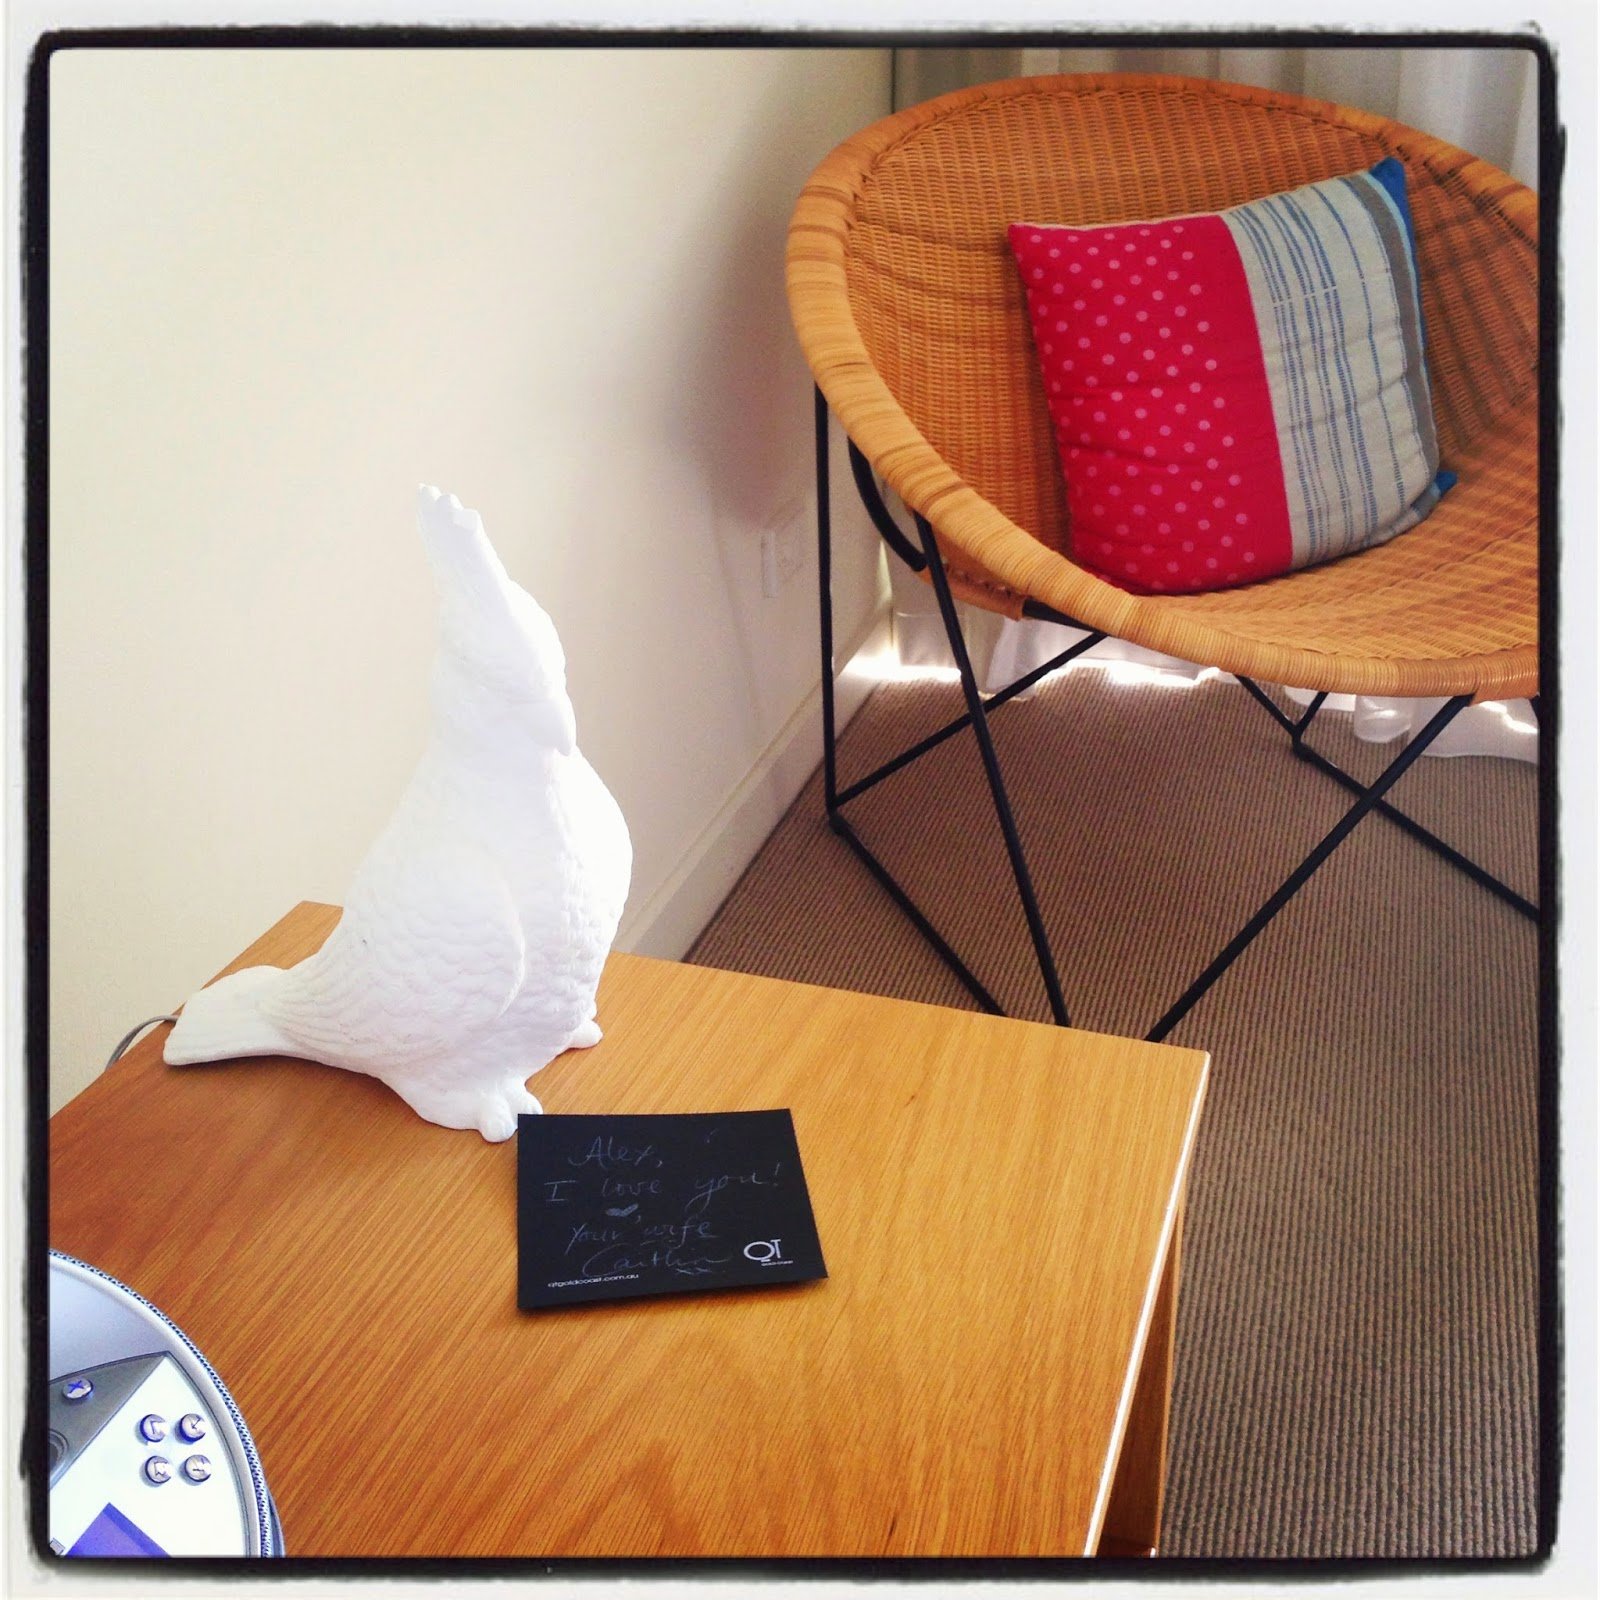 A Mother Prepares to go away for a Conference (ProBlogger)